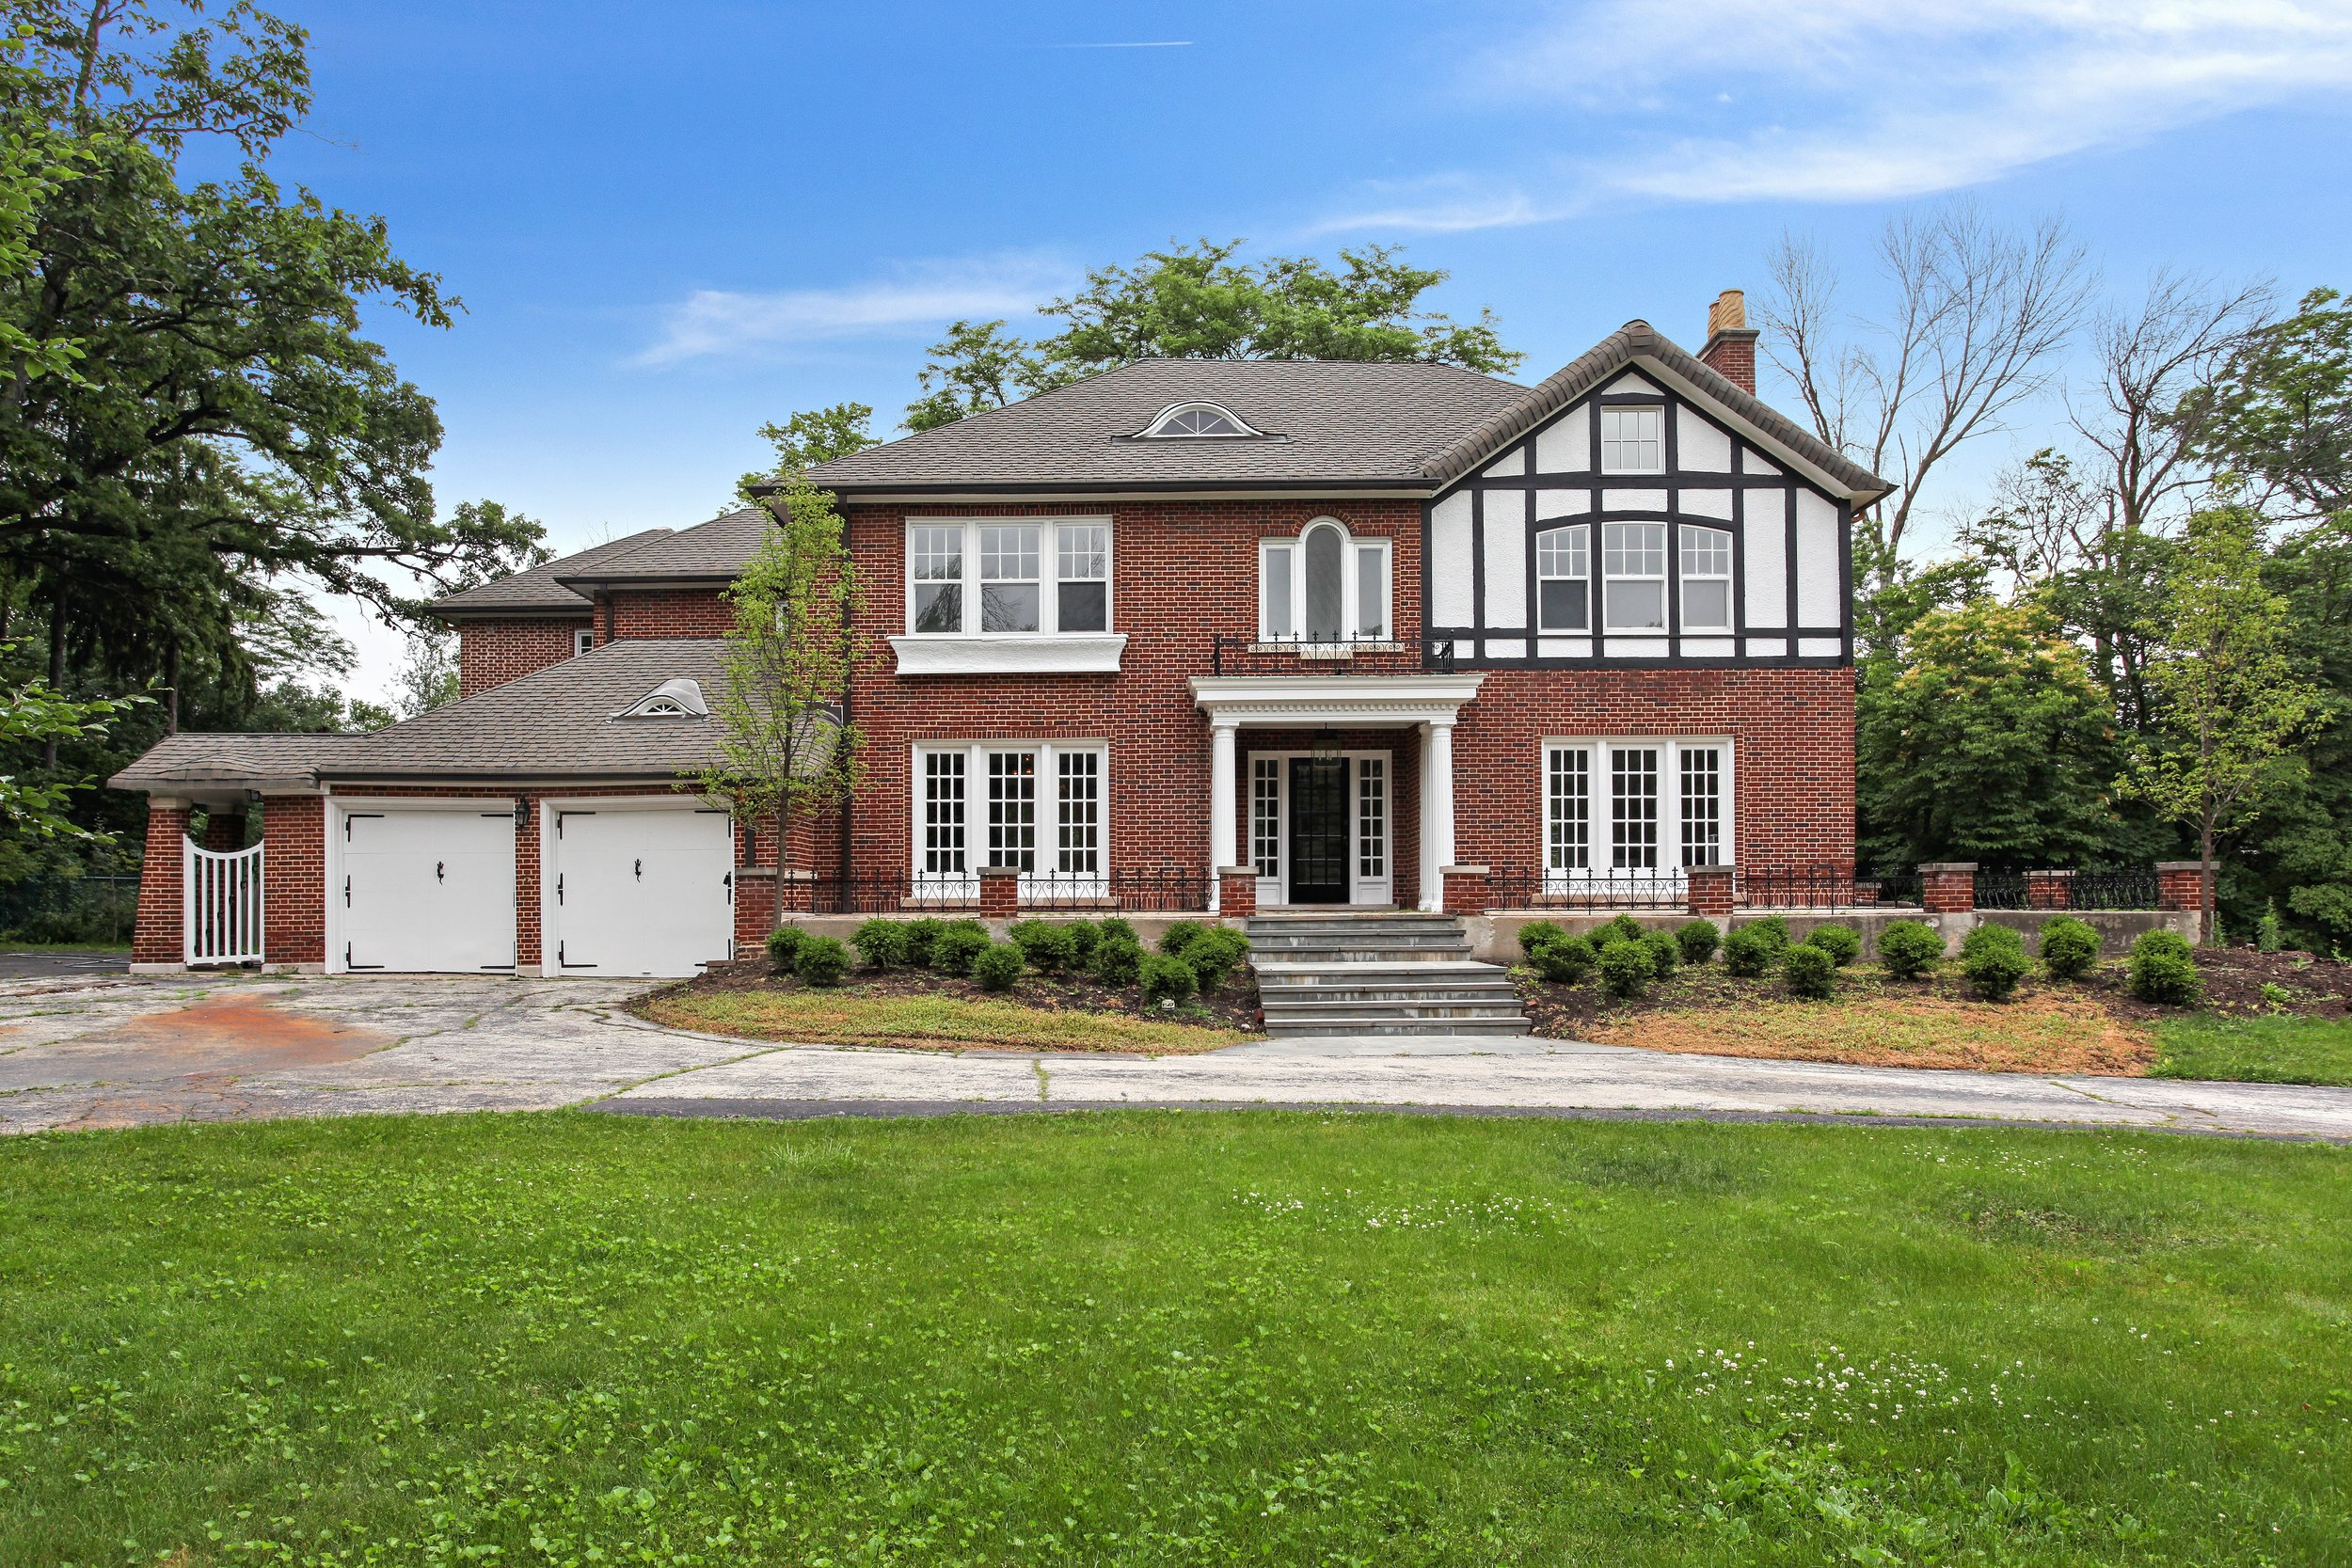 01_2050Knollwood_57_FrontView_HiRes.jpg